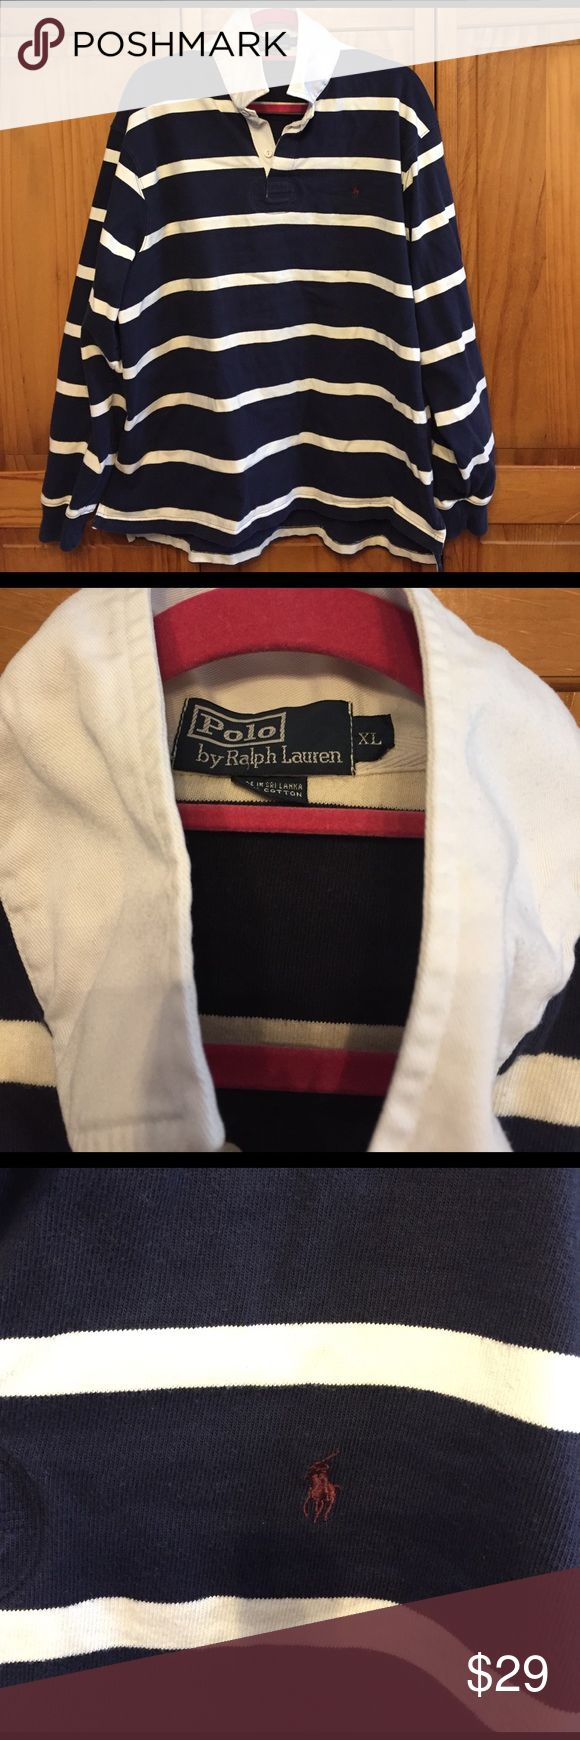 Classic Ralph Lauren striped rugby shirt Men's rugby shirt in very good used condition Polo by Ralph Lauren Shirts Polos